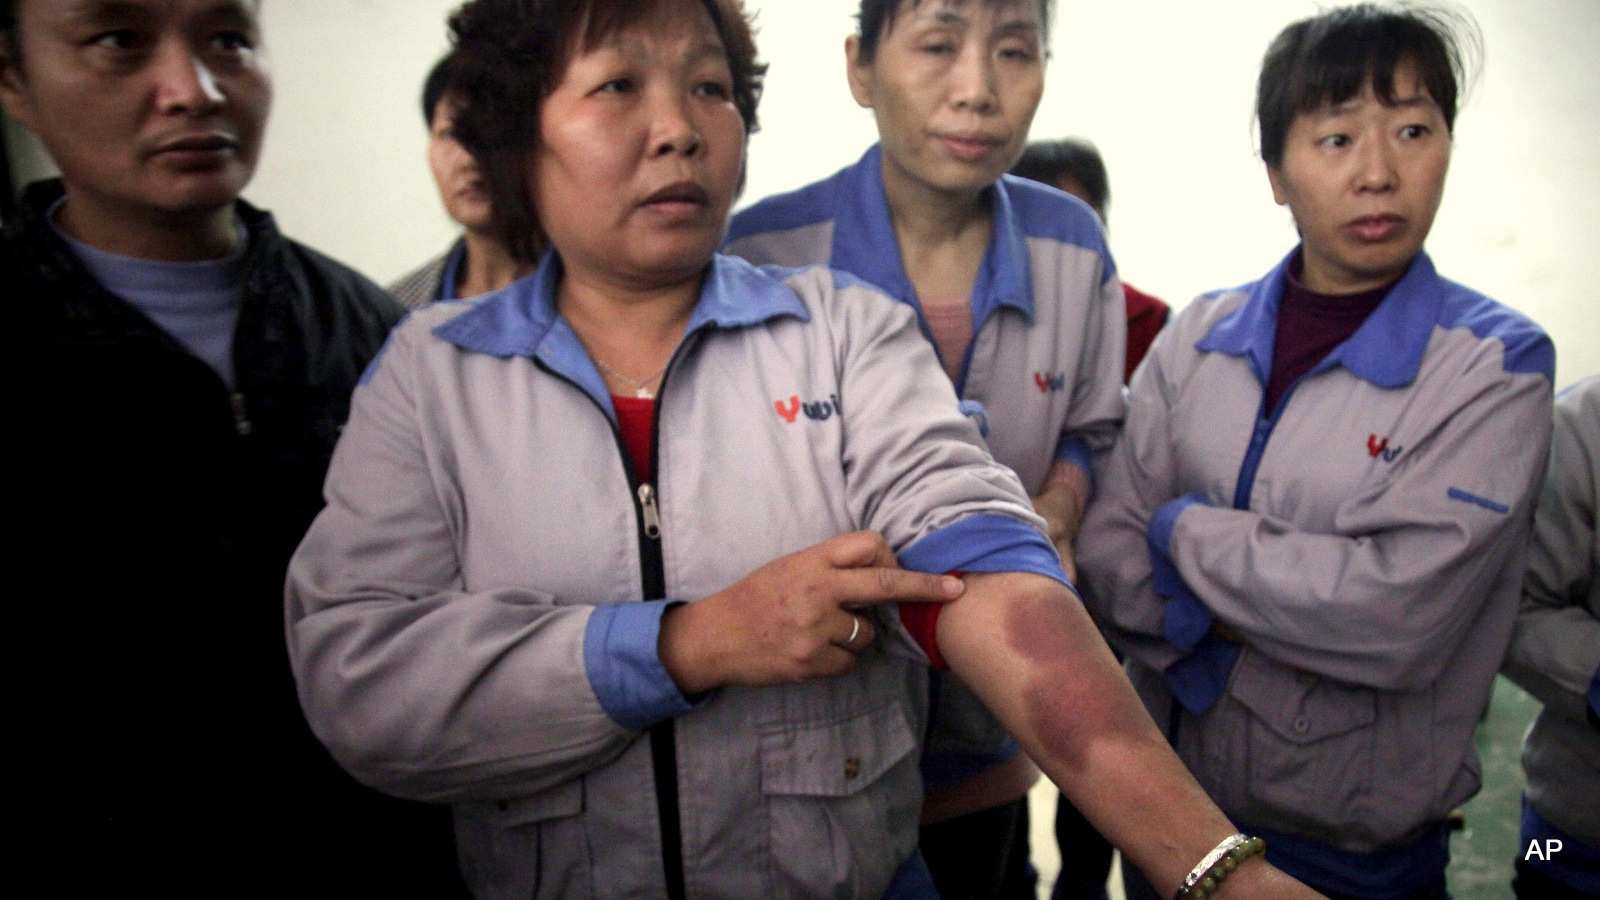 In this March 26, 2015 photo, one of workers shows bruises which she says were caused by police as they moved to suppress a demonstration by workers two days earlier, inside the Cuiheng Handbag Factory in Nanlang township in Zhongshan city in southern China's Guangdong Province. A Nanlang government statement said it dispatched a team March 24 to persuade the workers to return to work, but that some of them were flattening tires, destroying a surveillance camera, displaying banners and preventing other workers from returning to the workplace. Four workers were detained. Workers said they were holding a peaceful rally when police attacked them.